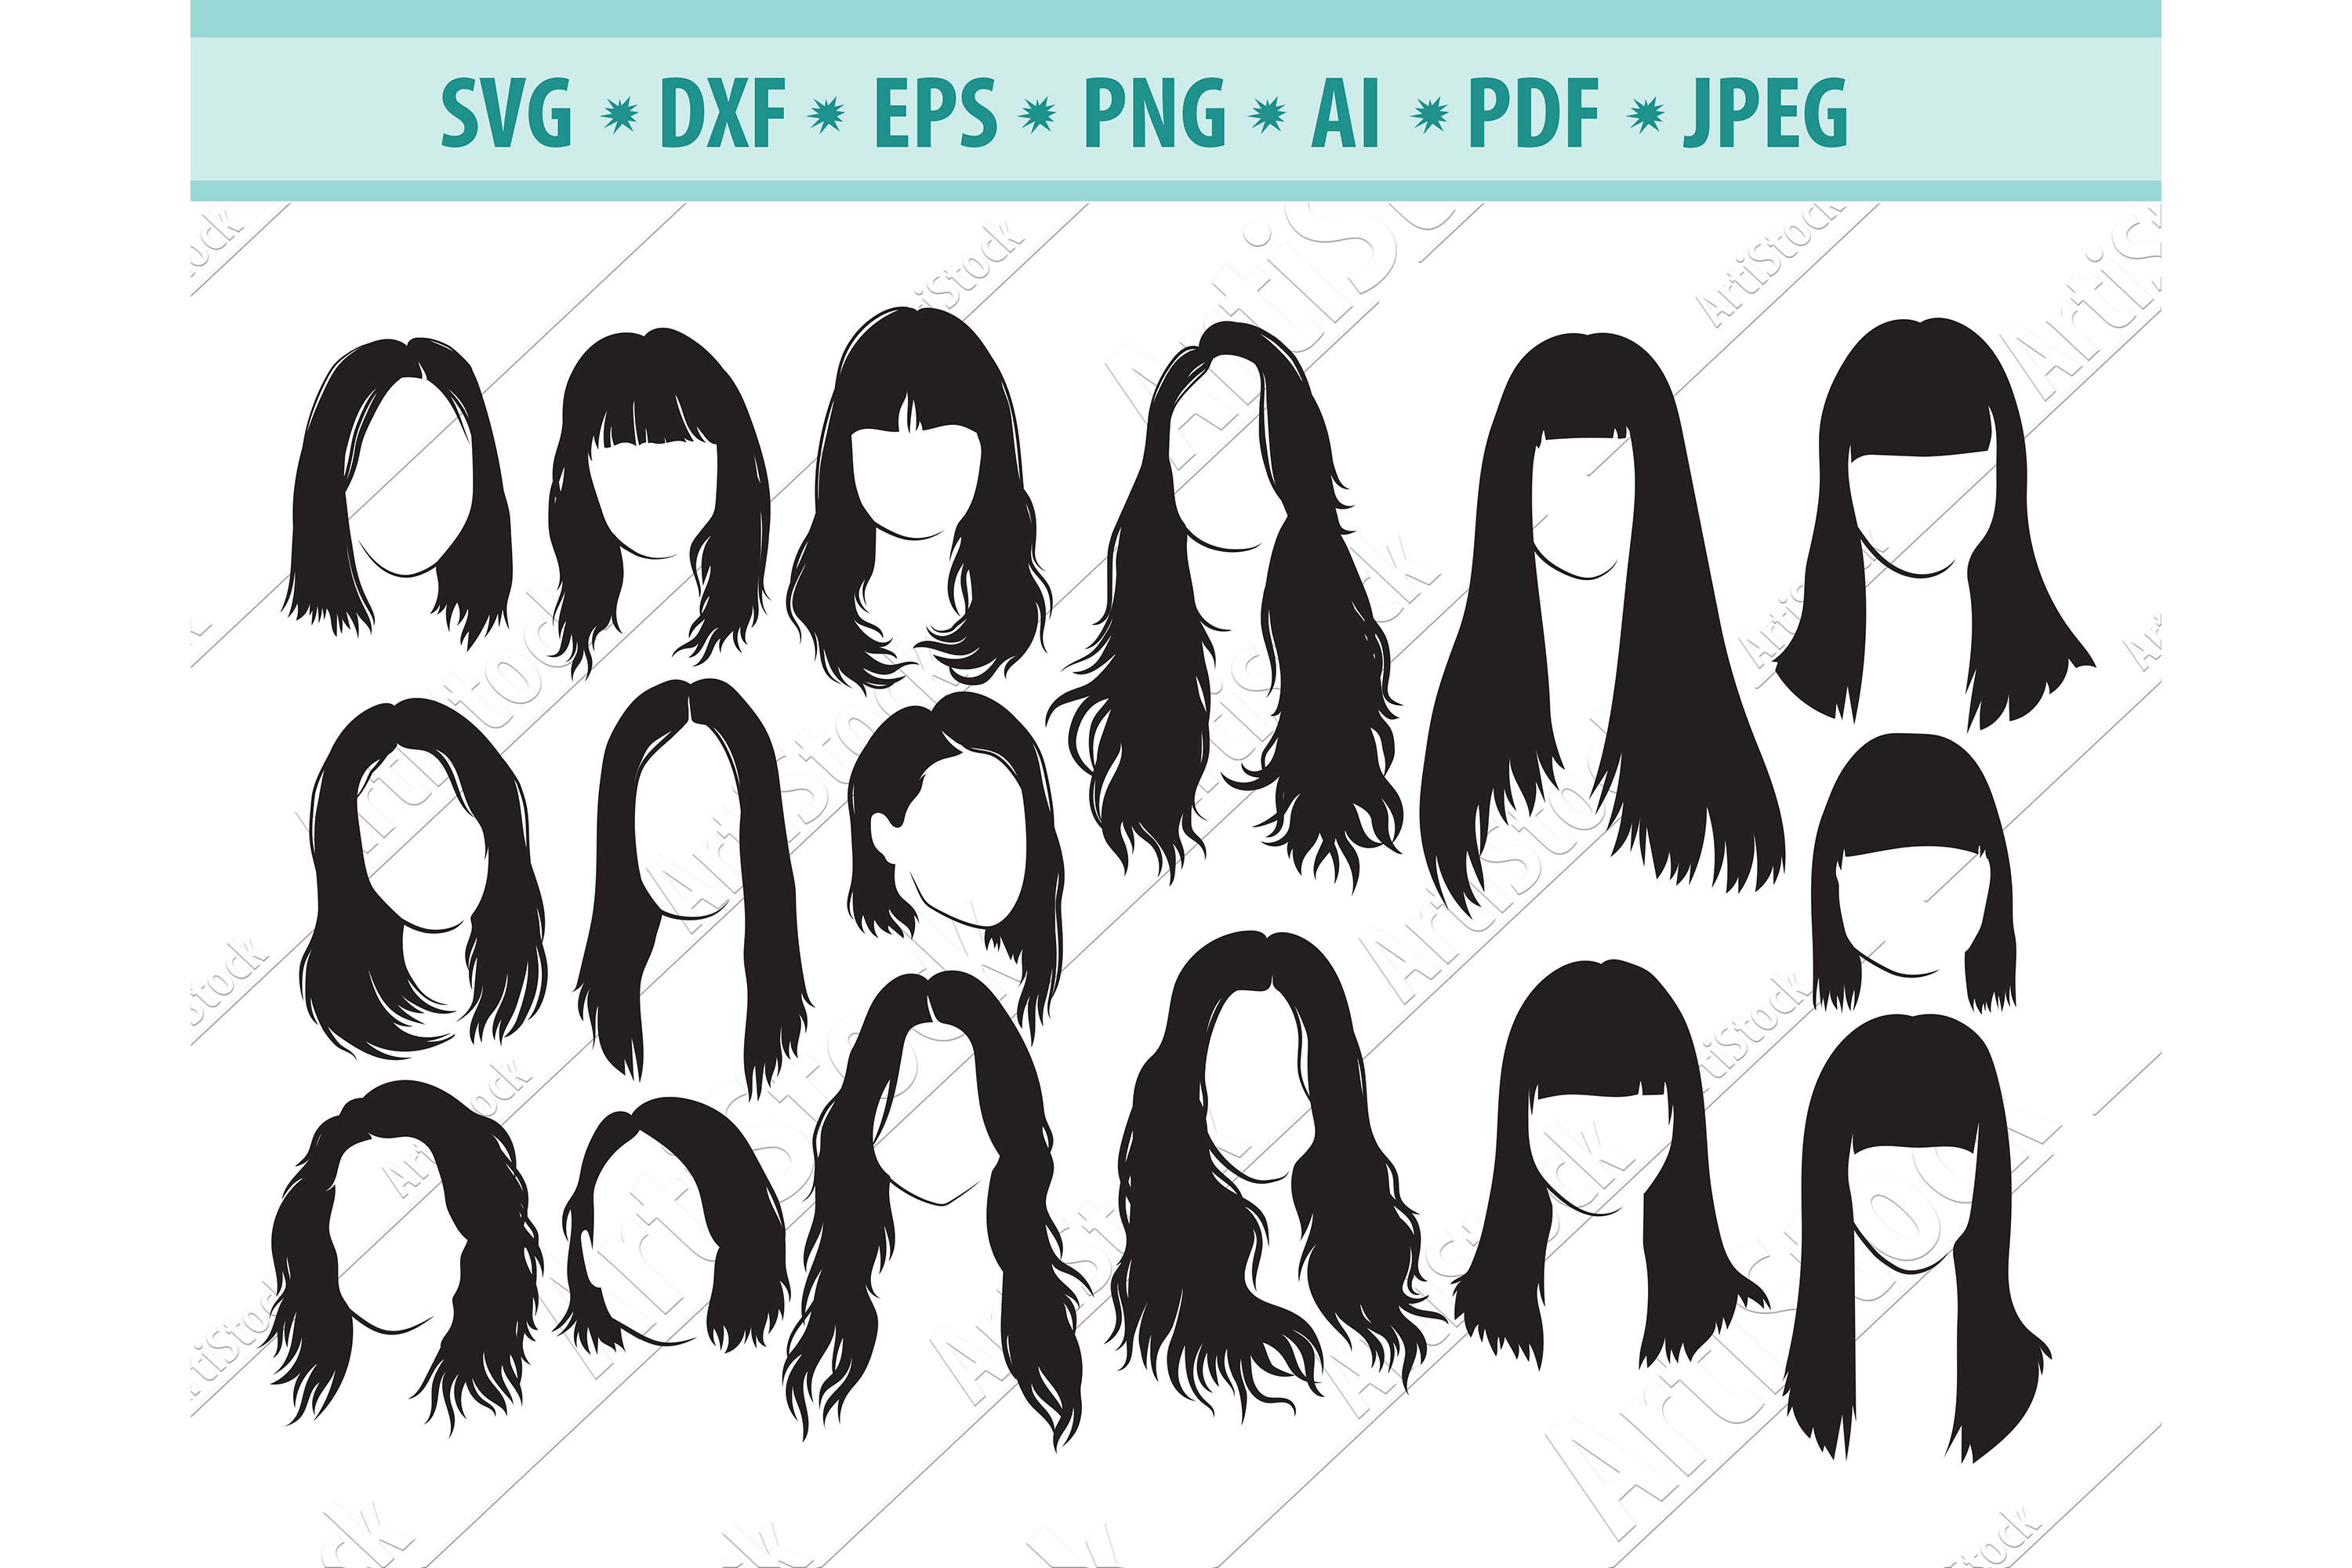 Woman haircuts SVG, Female haircut Png, Hairdresser Eps, Dxf example image 1